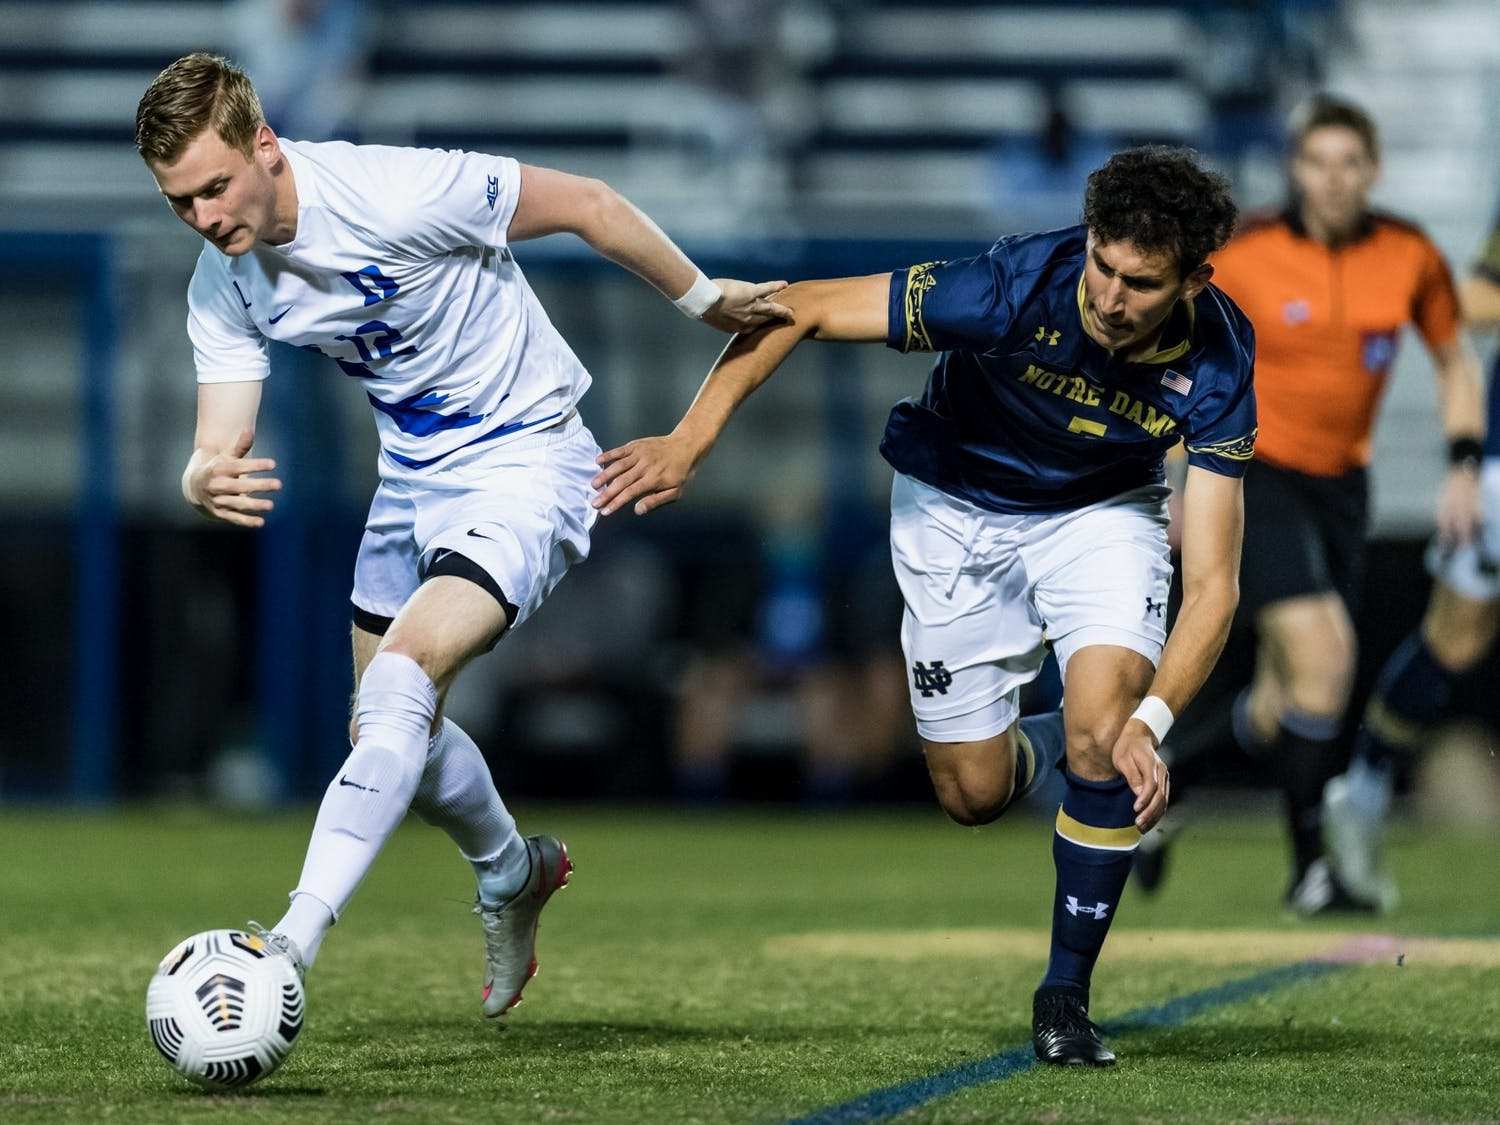 Sophomore Thorleifur Ulfarsson tallied his second hat trick of his career against Howard.